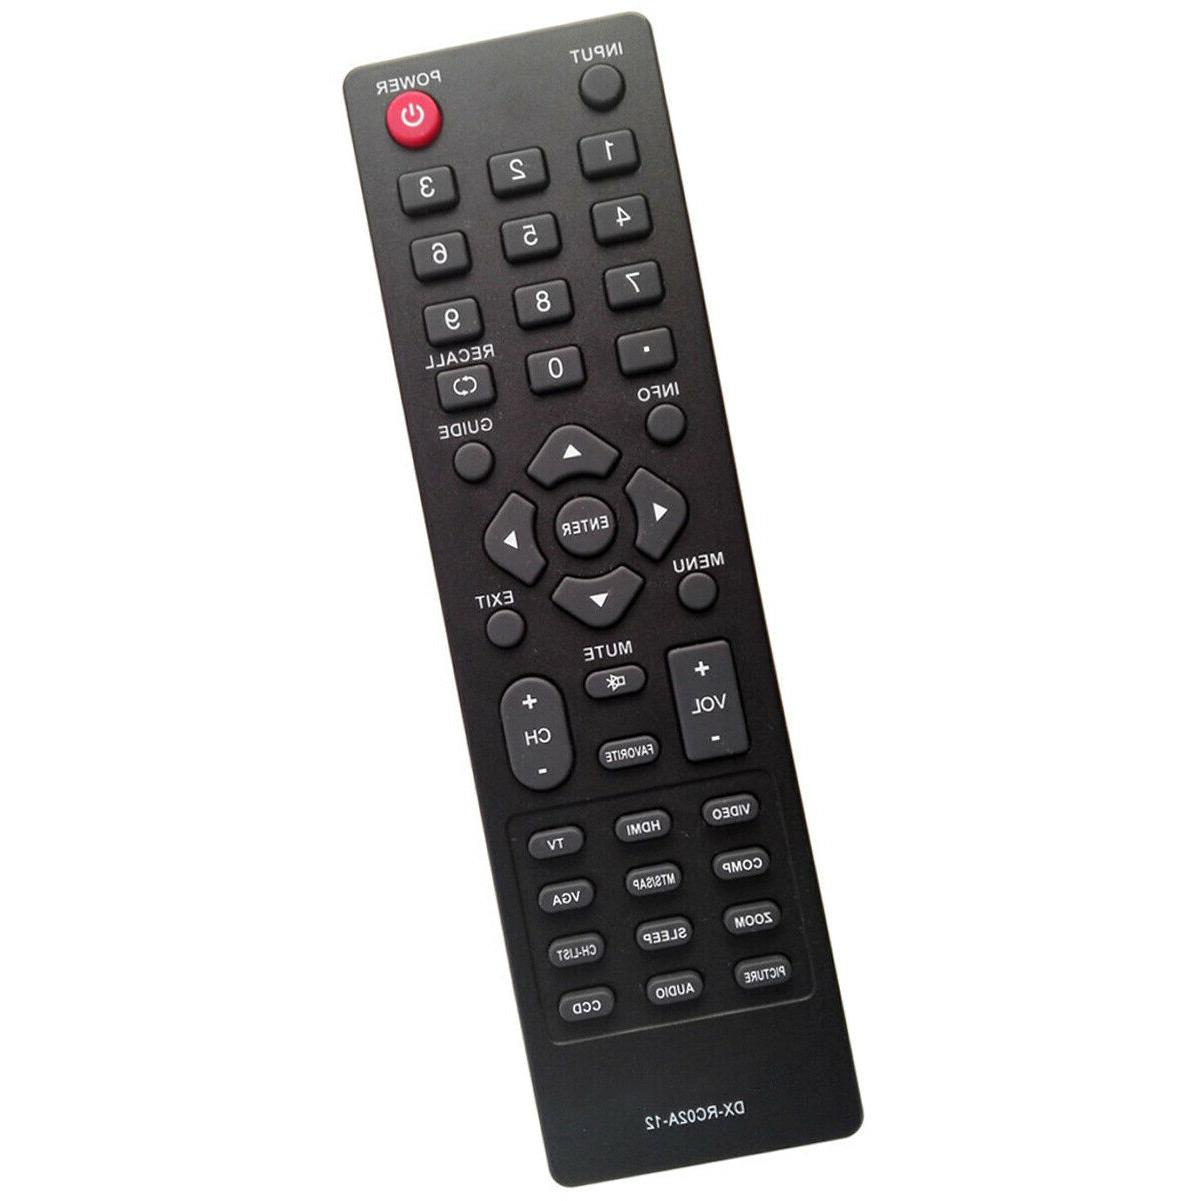 ZdalaMit DX-RC02A-12 Replace Remote Control For Dynex DX-40L130A11 DX-55L150A11 DX-15L150A11 DX-40L150A11 DX-46L150A11 DX-24E150A11 DX-32L220A12 DX-37L200A12